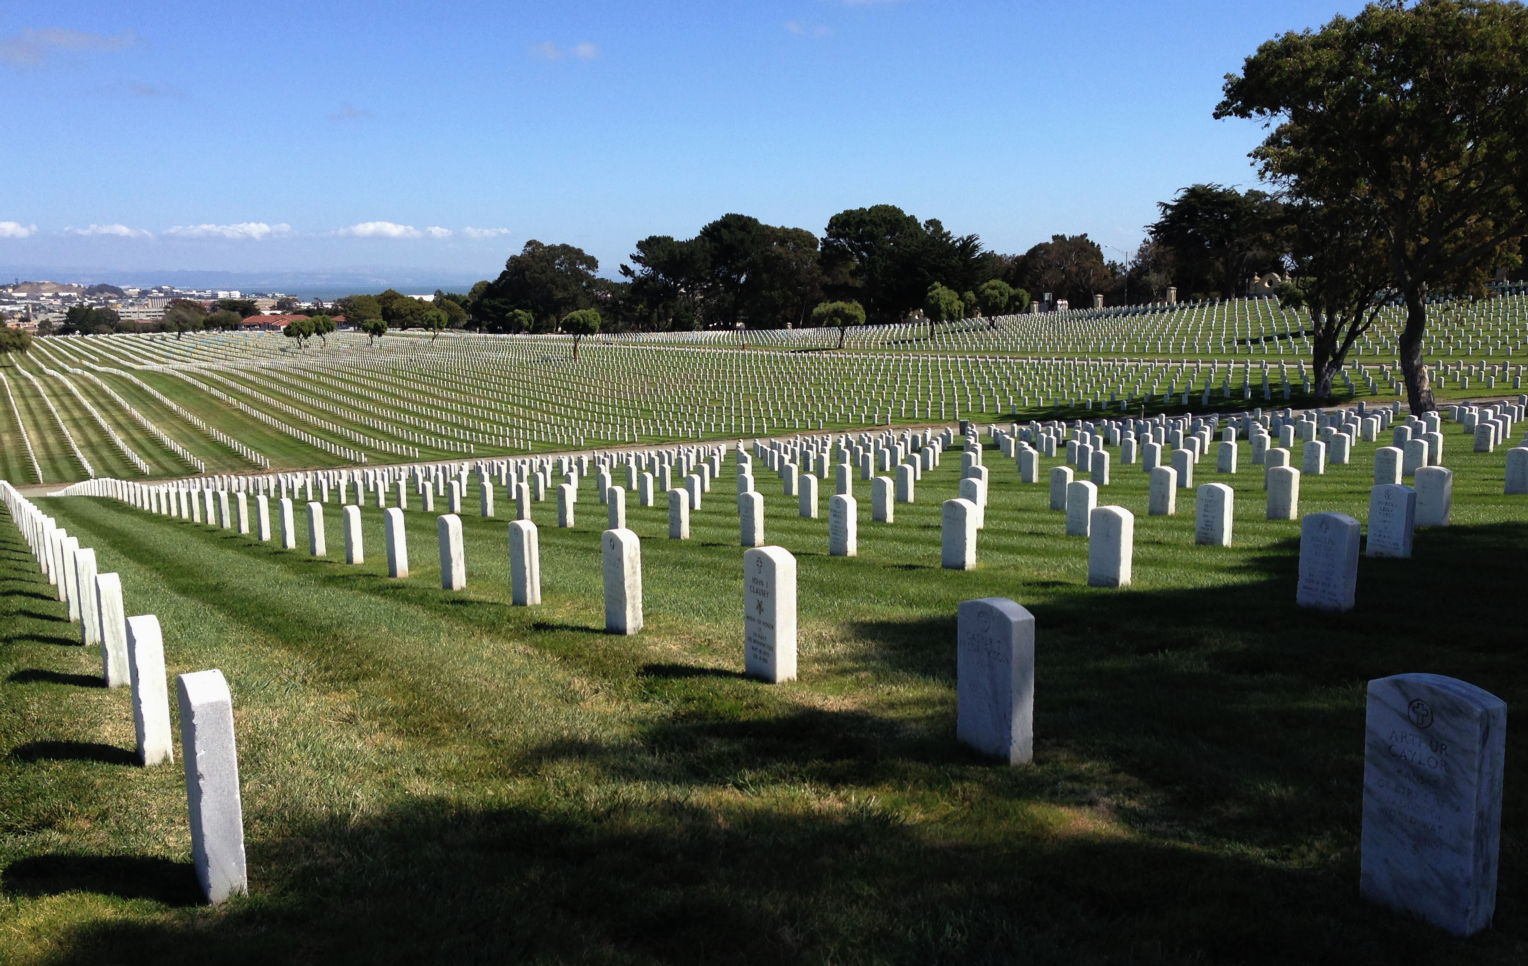 wpid-gg_national_cemetary-2012-10-6-10-11.jpg